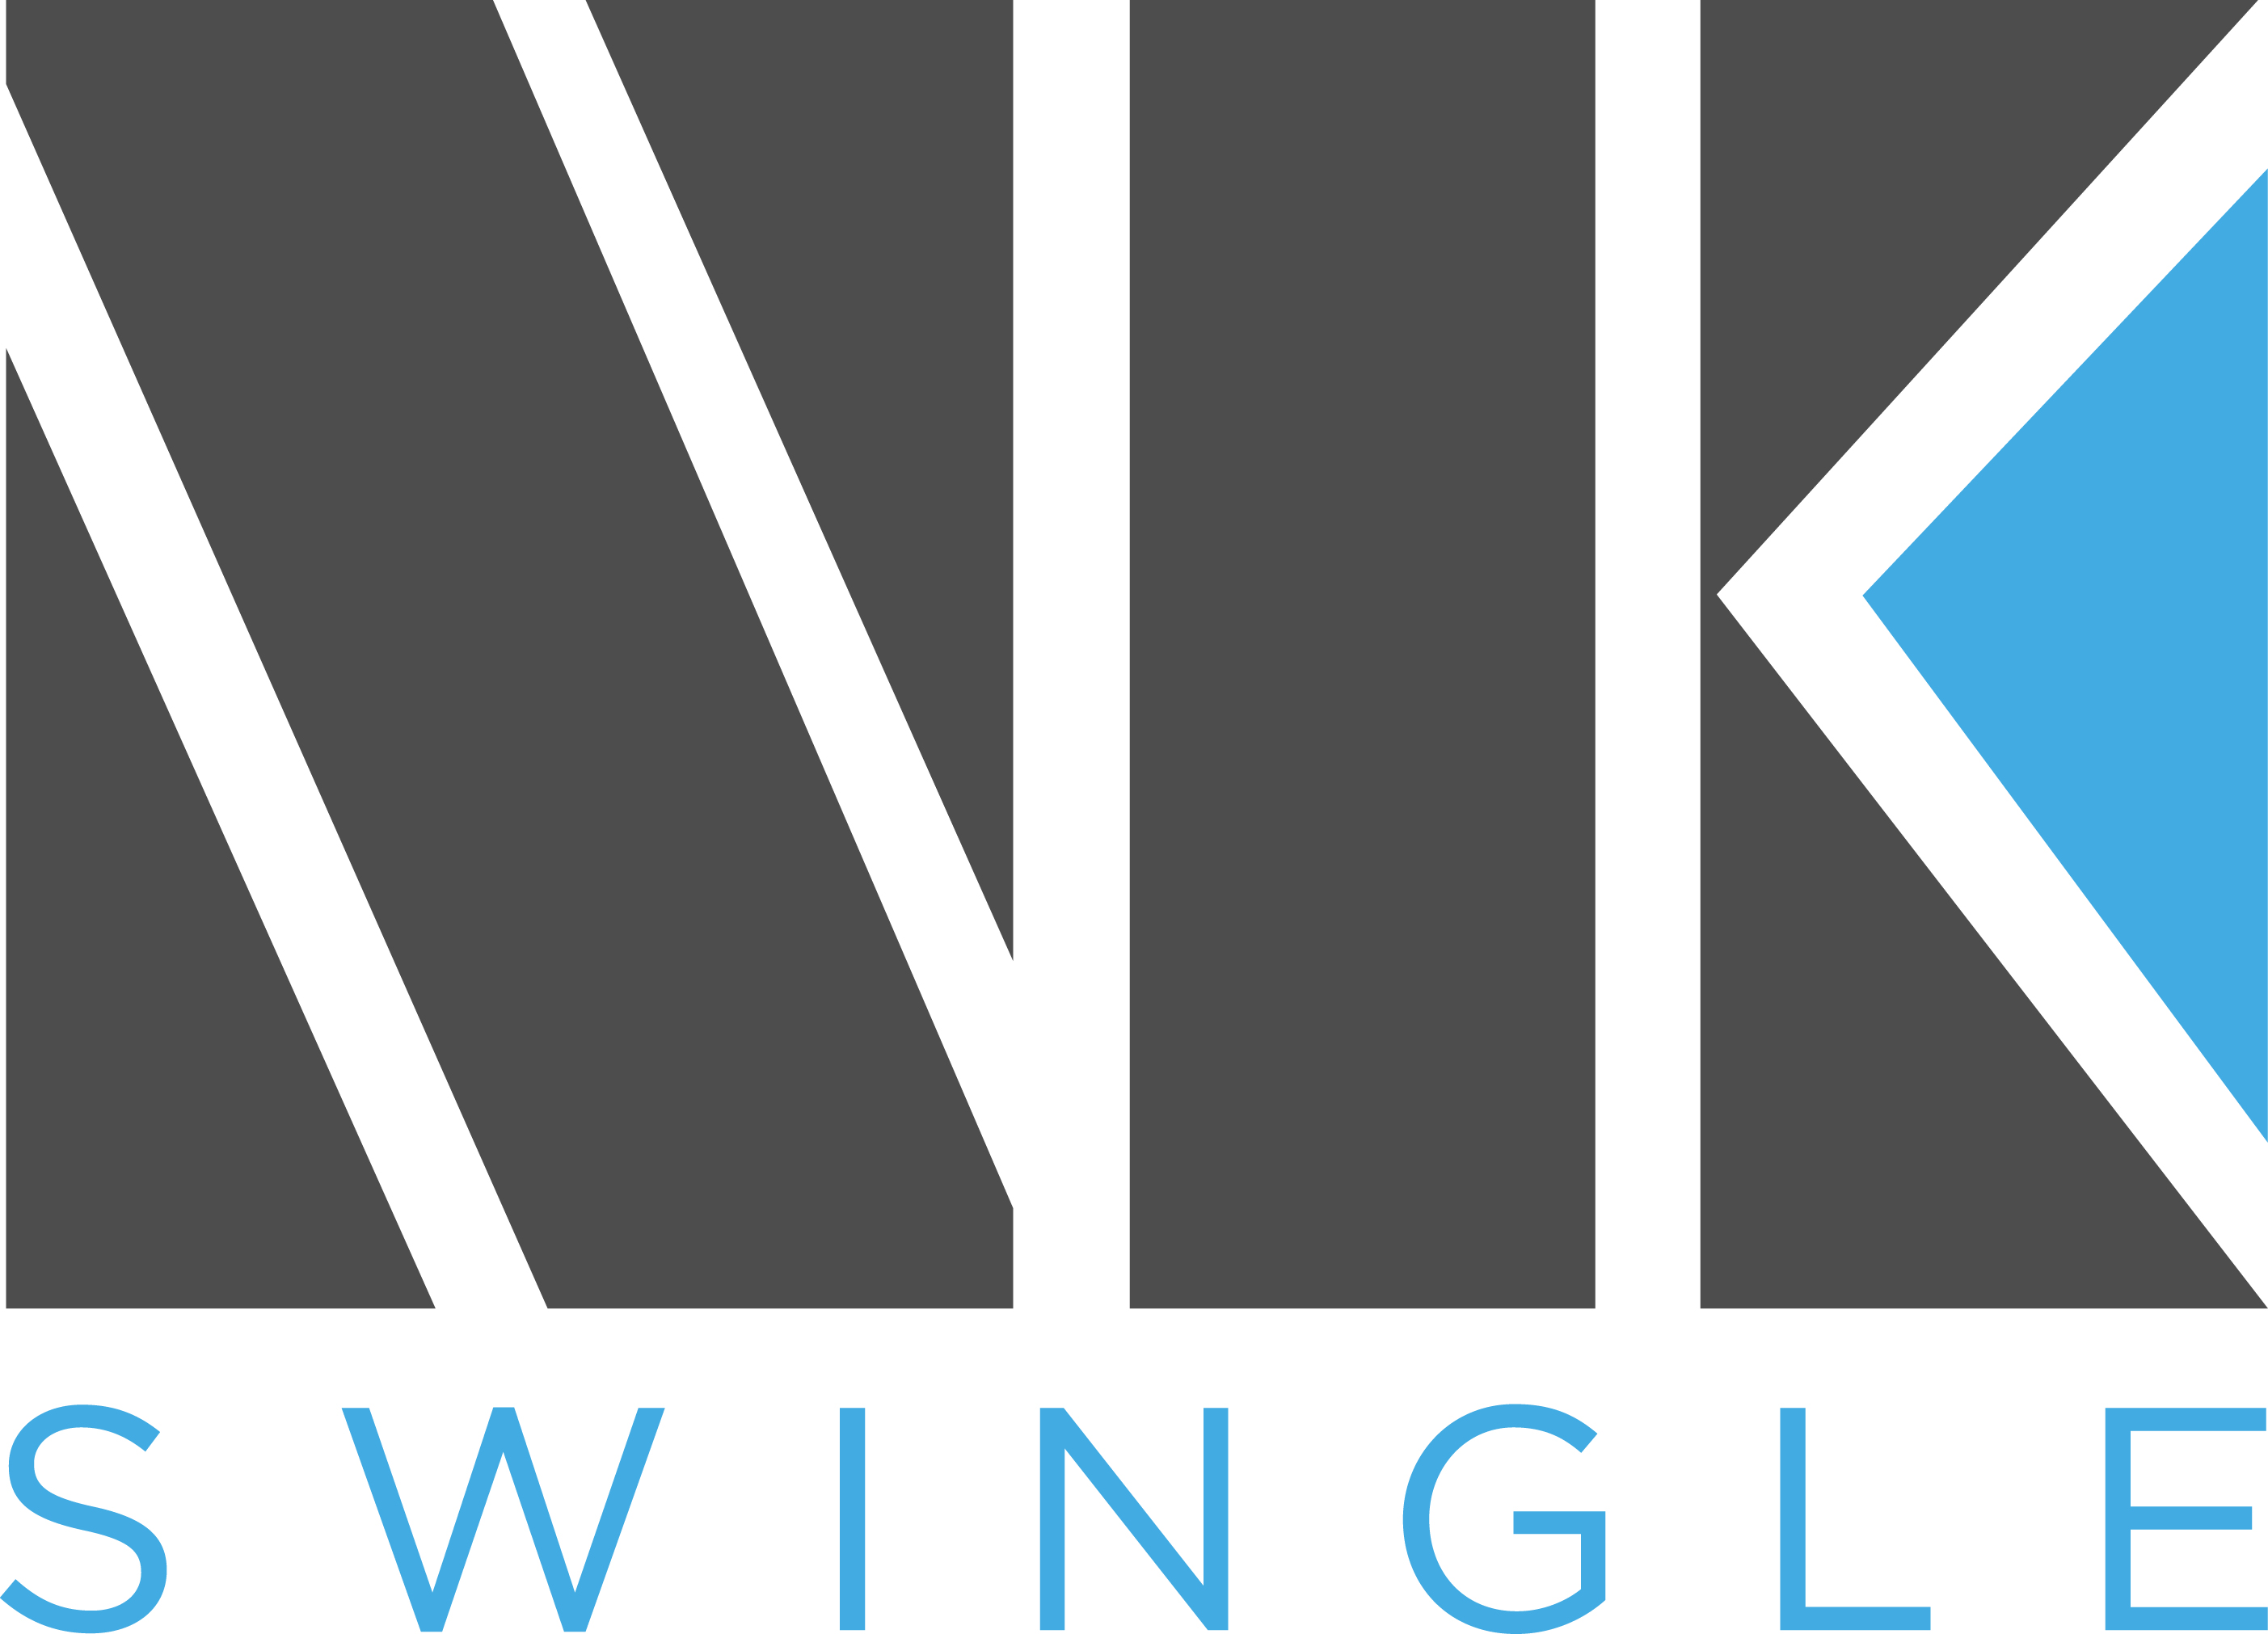 Nick & Kami Swingle logo